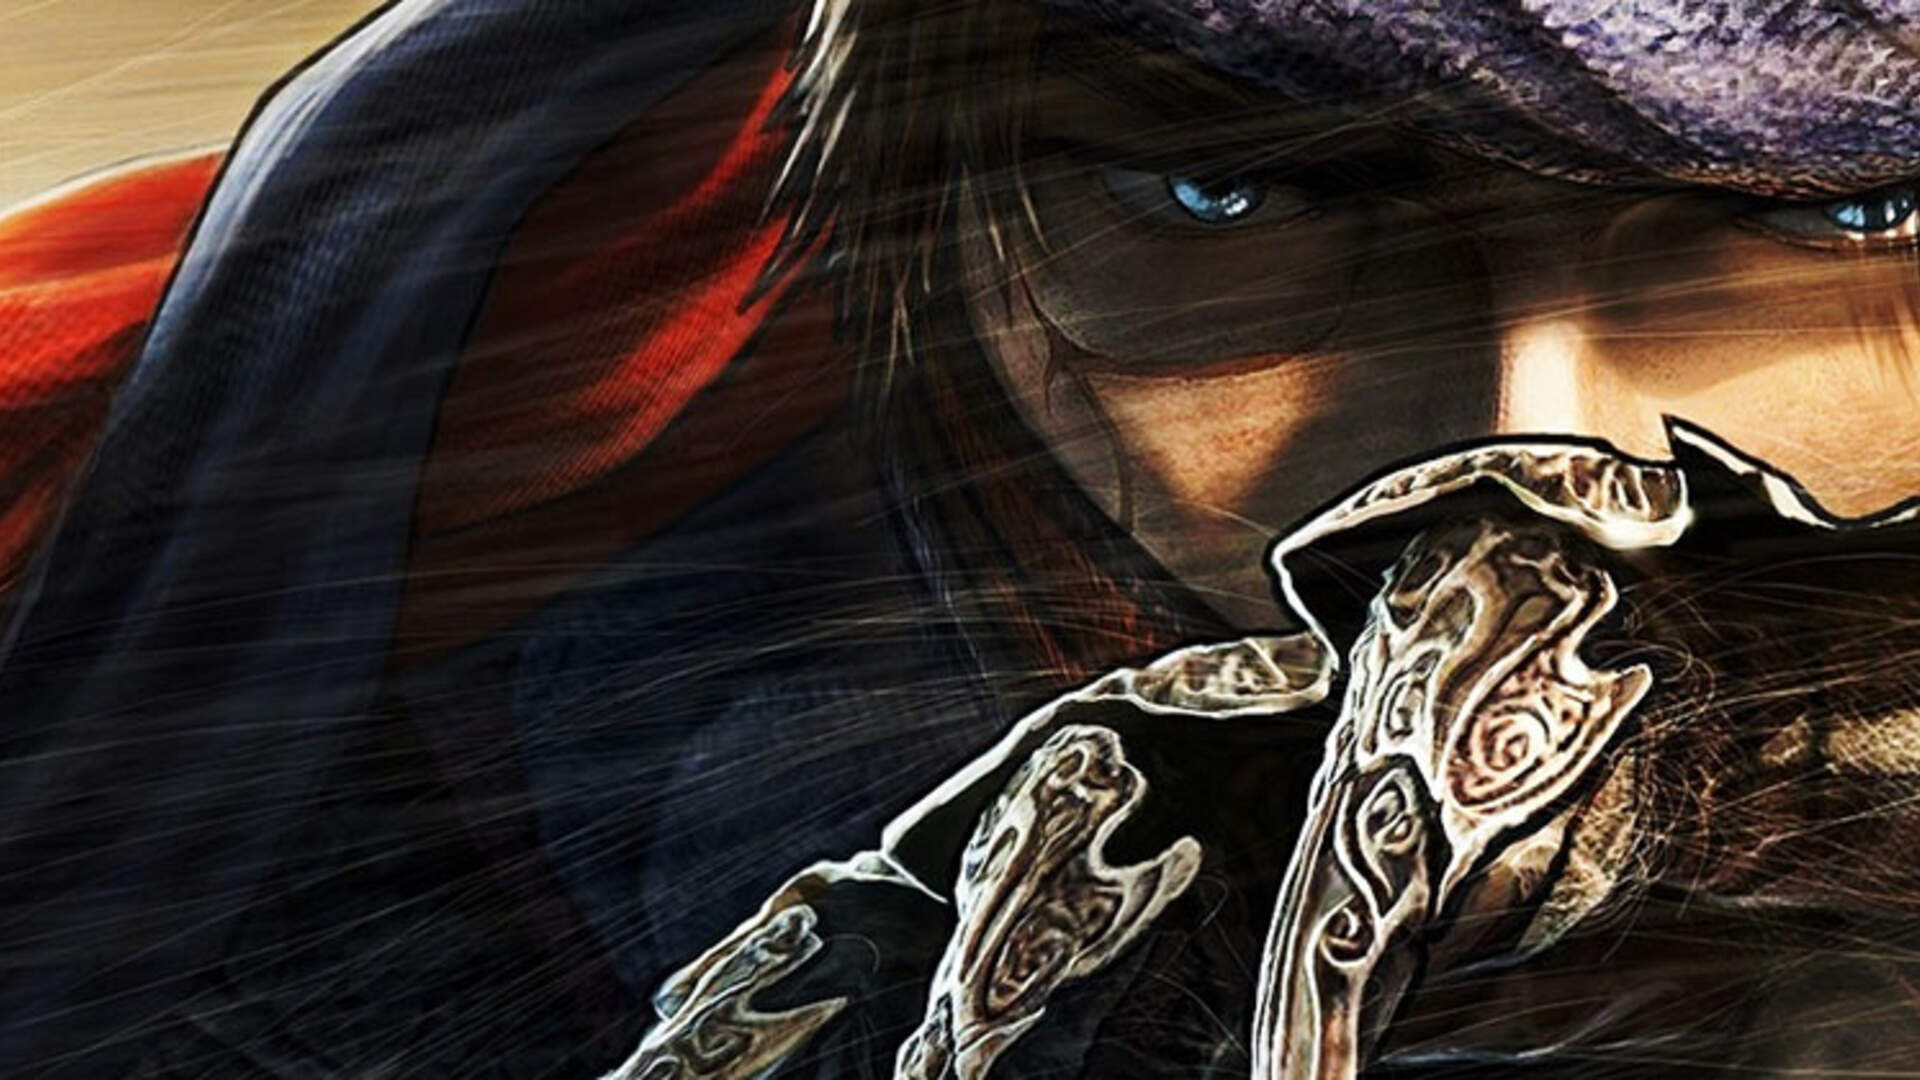 Revisit Prince of Persia with This Week's Retronauts